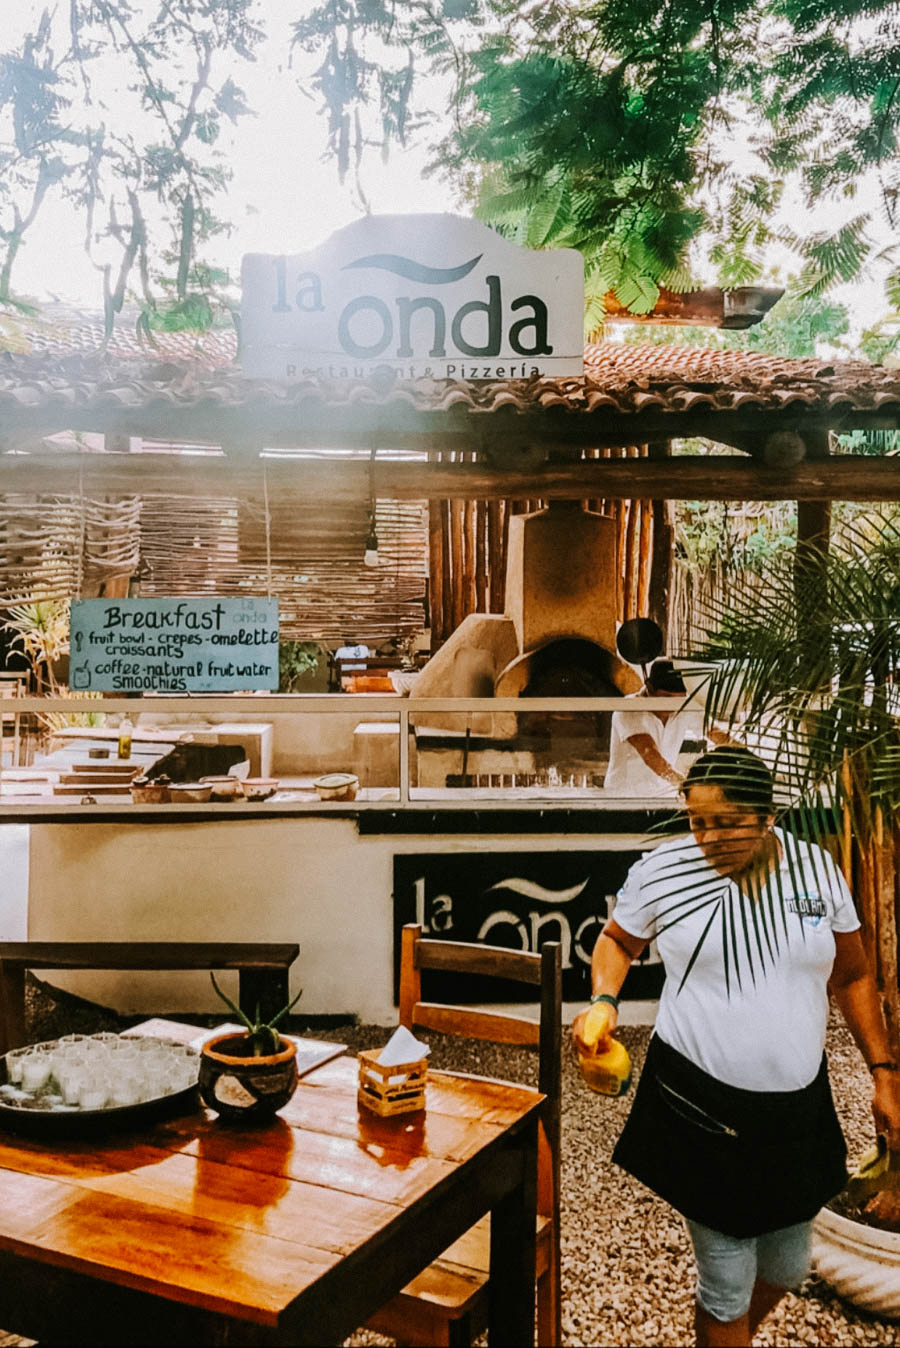 La Onda Pizza is one of the best restaurants in Tulum. If you're looking for takeaway in Tulum then grab a pizza from La Onda and head for the beach.